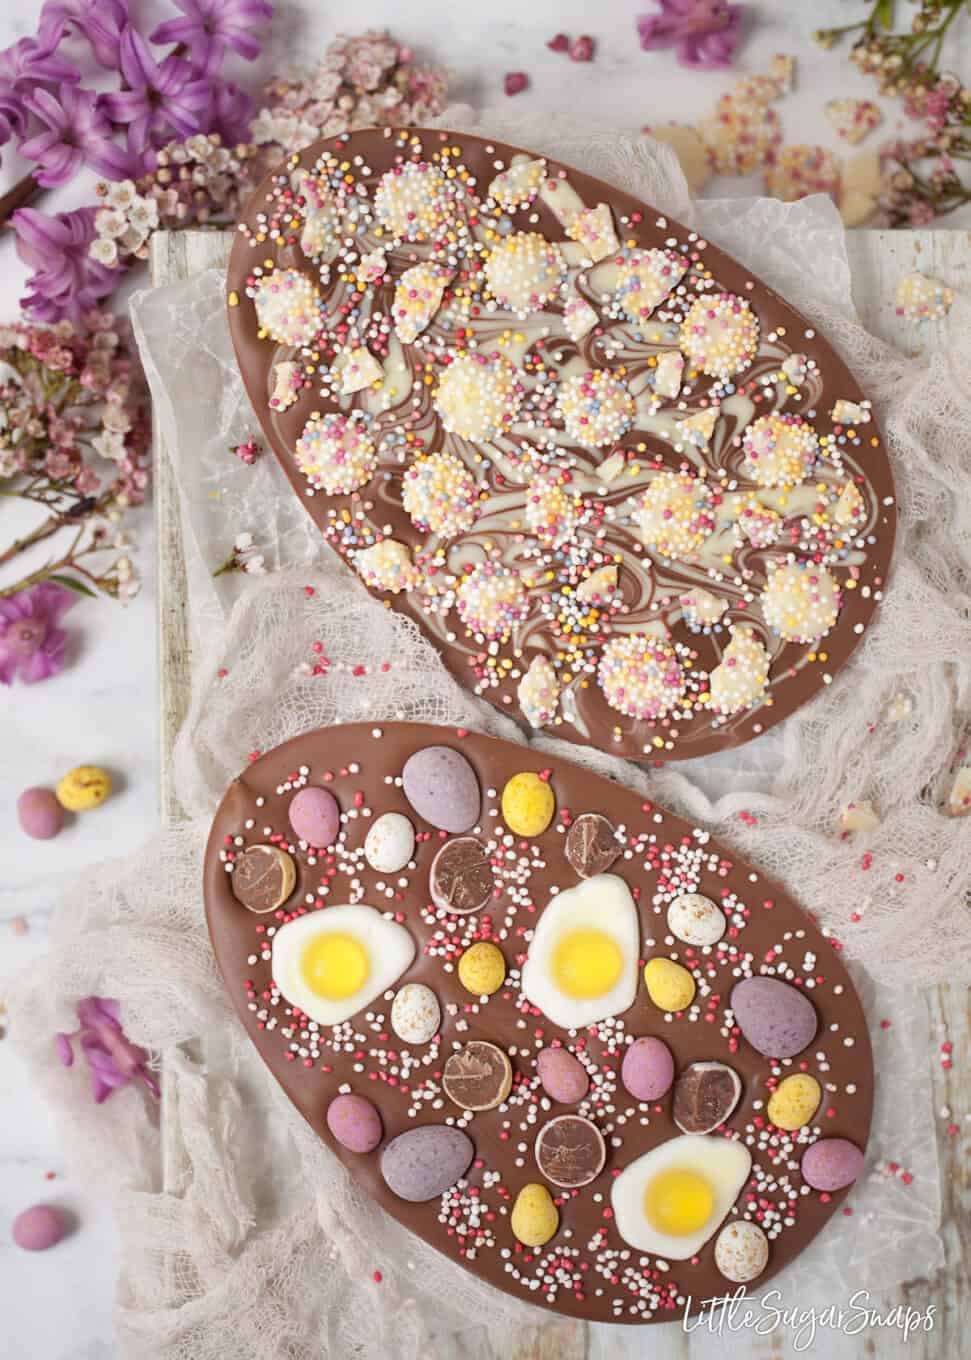 Chocolate eggs topped with mini eggs, sprinkles and jelly sweets.